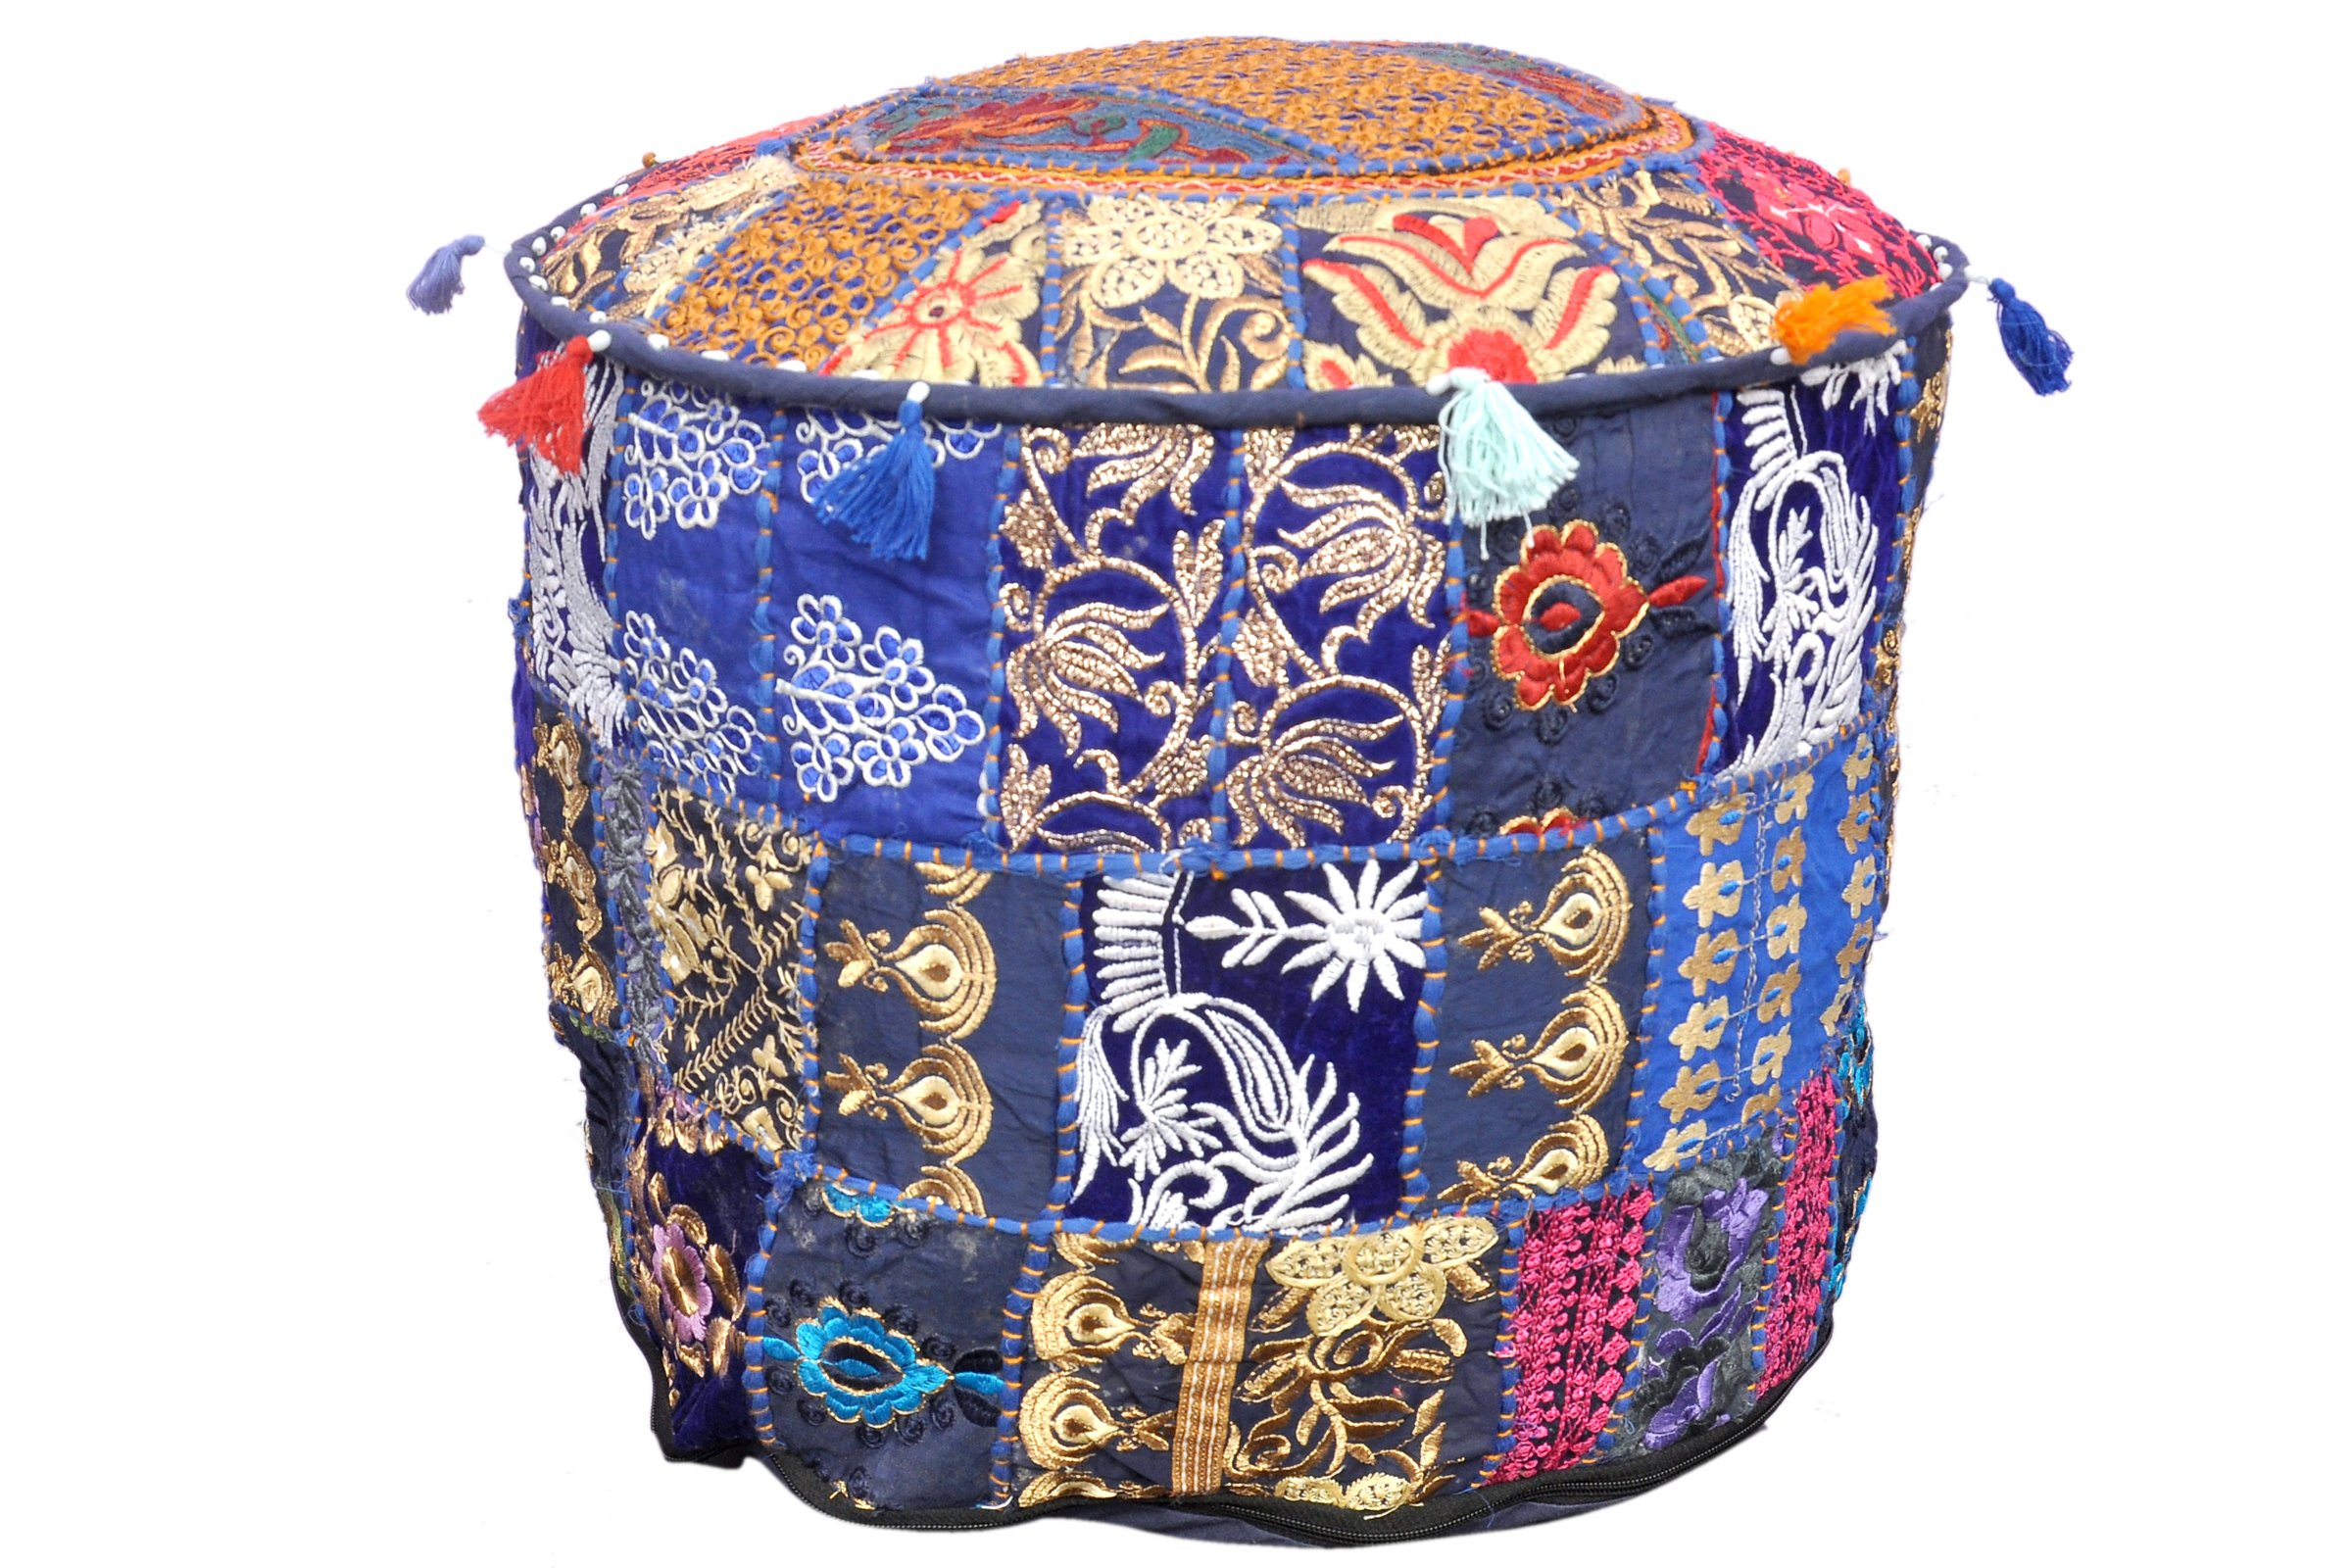 Indian Vintage Patchwork Ottoman Pouf , Indian Living Room Ottoman Pouf Cover, Foot Stool Storage Cover, Round Ottoman Cover Pouf, Floor Pillow Ottoman Poof Cotton Cushion Ottoman Cover